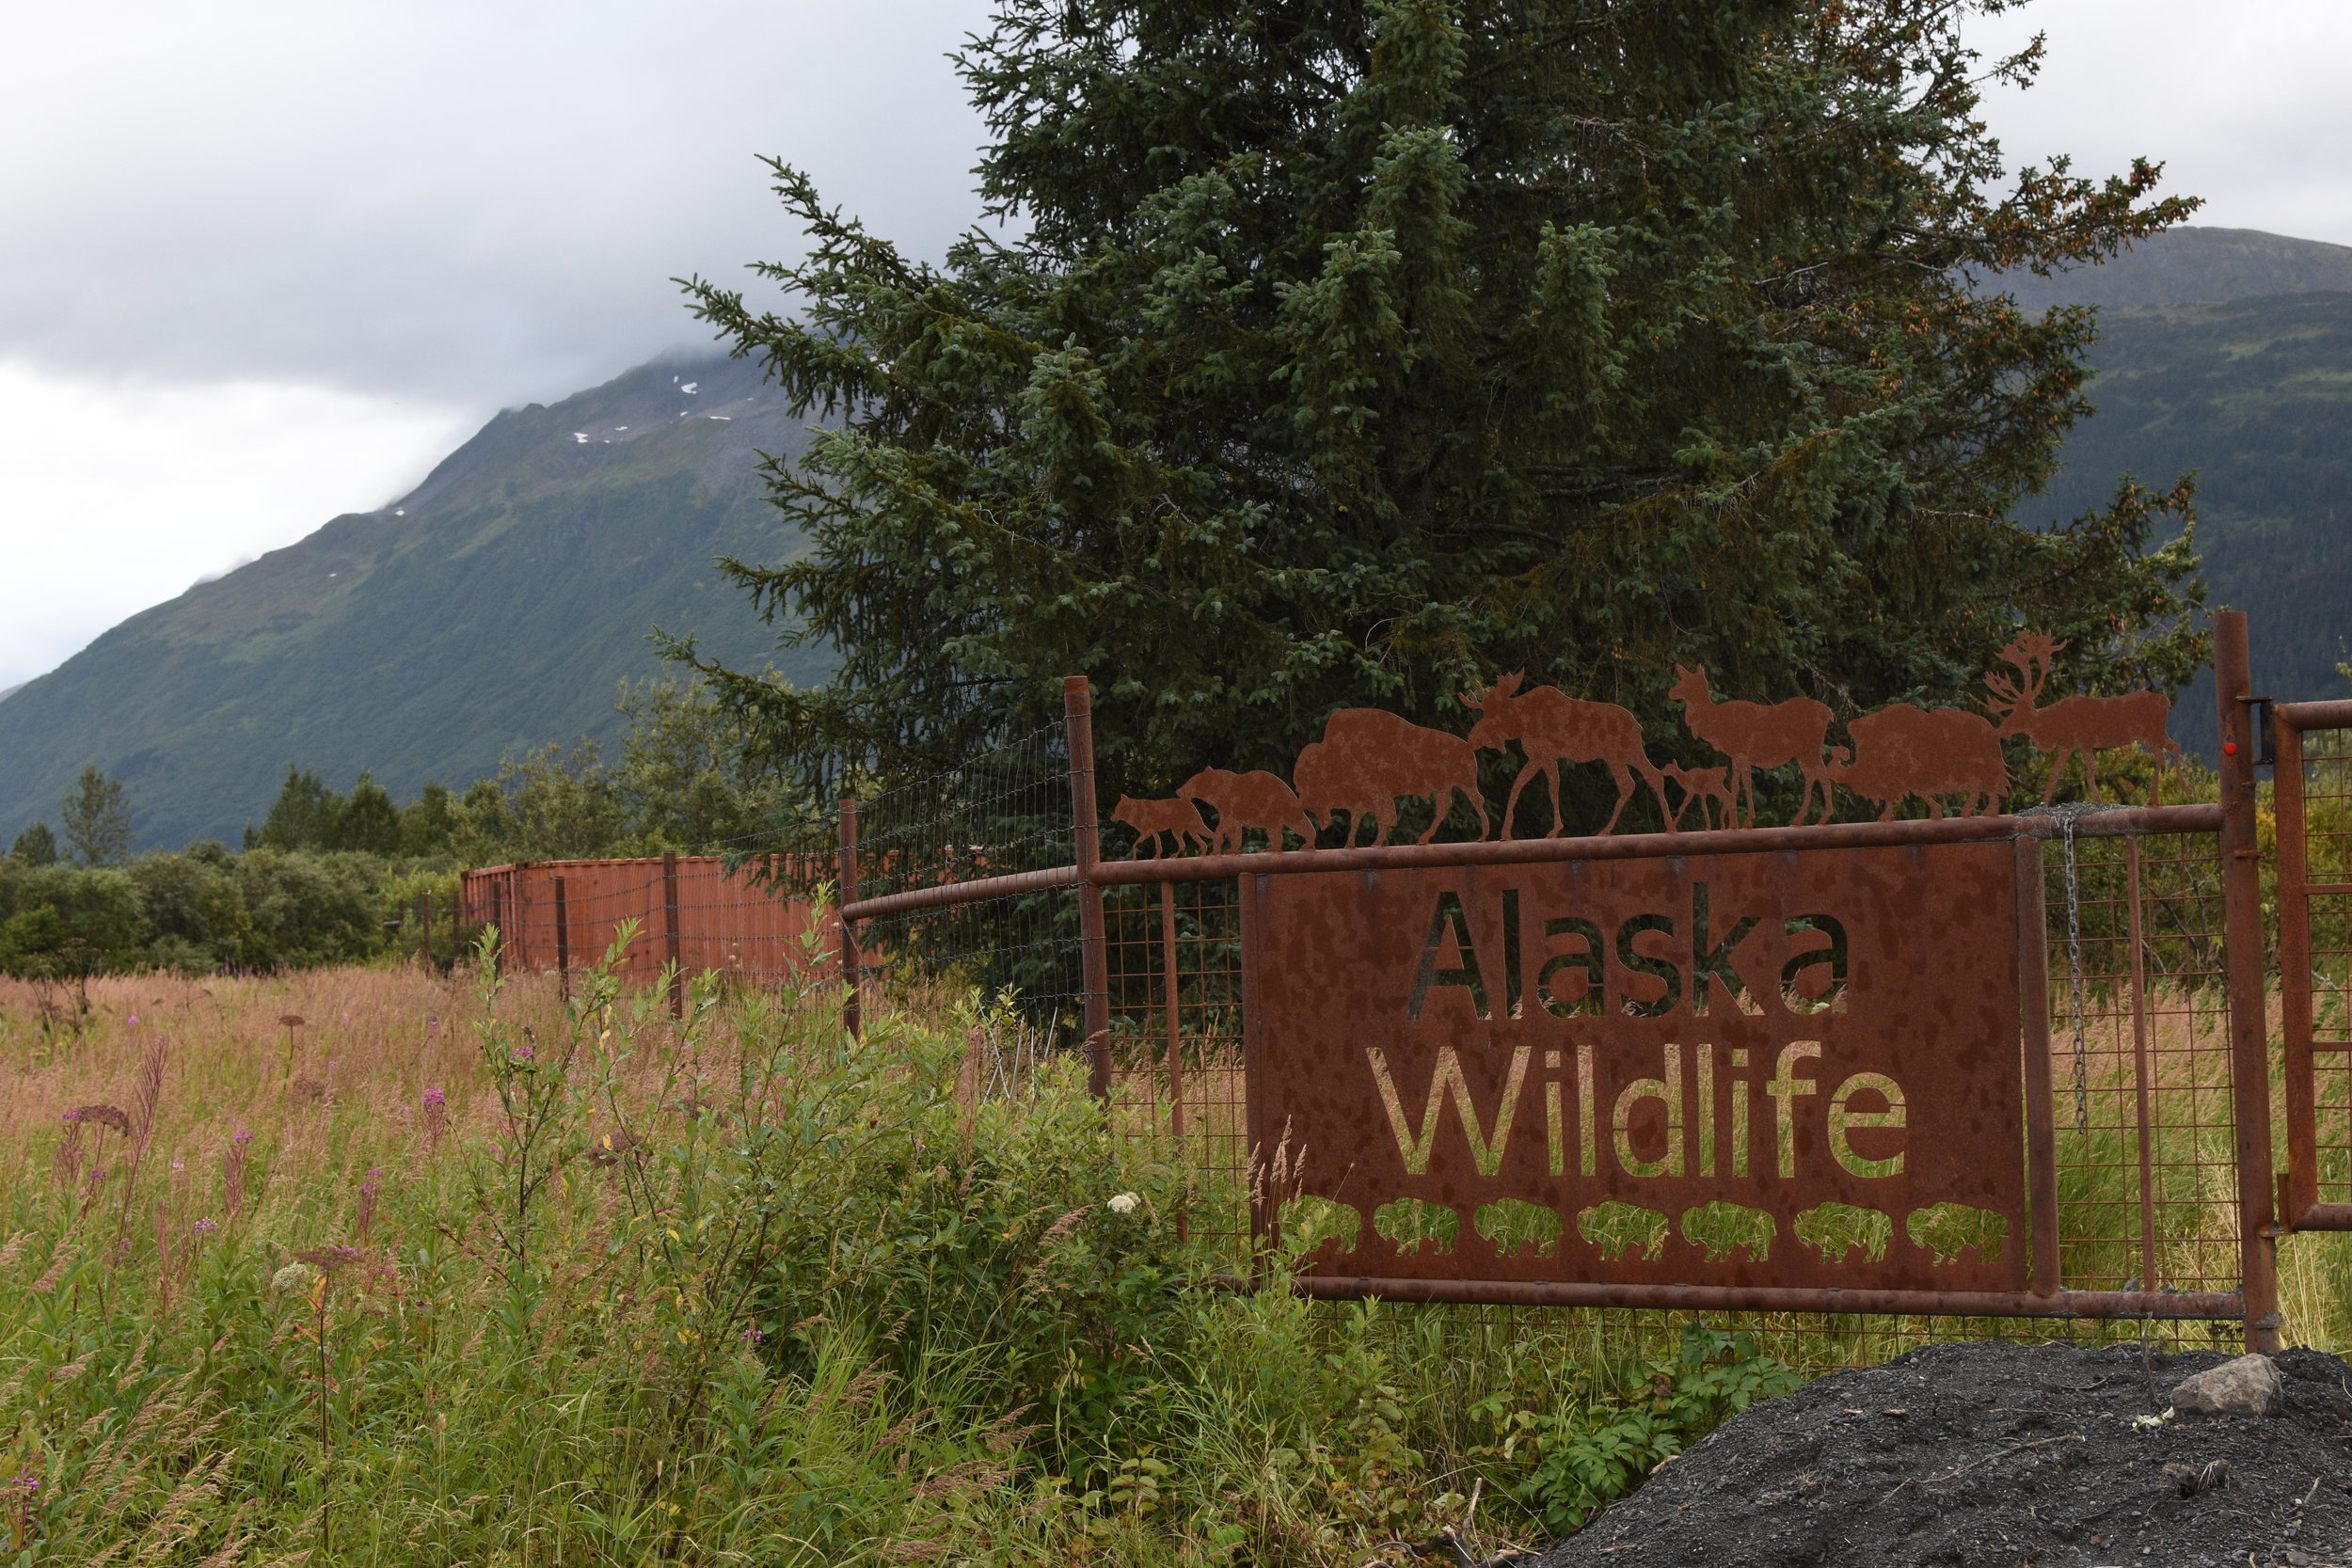 A short drive from Girdwood, you'll find the Alaska Wildlife Conservation Center, home to injured and displaced animals that offer visitors an up-close view of some of the many animals that roam Alaska.